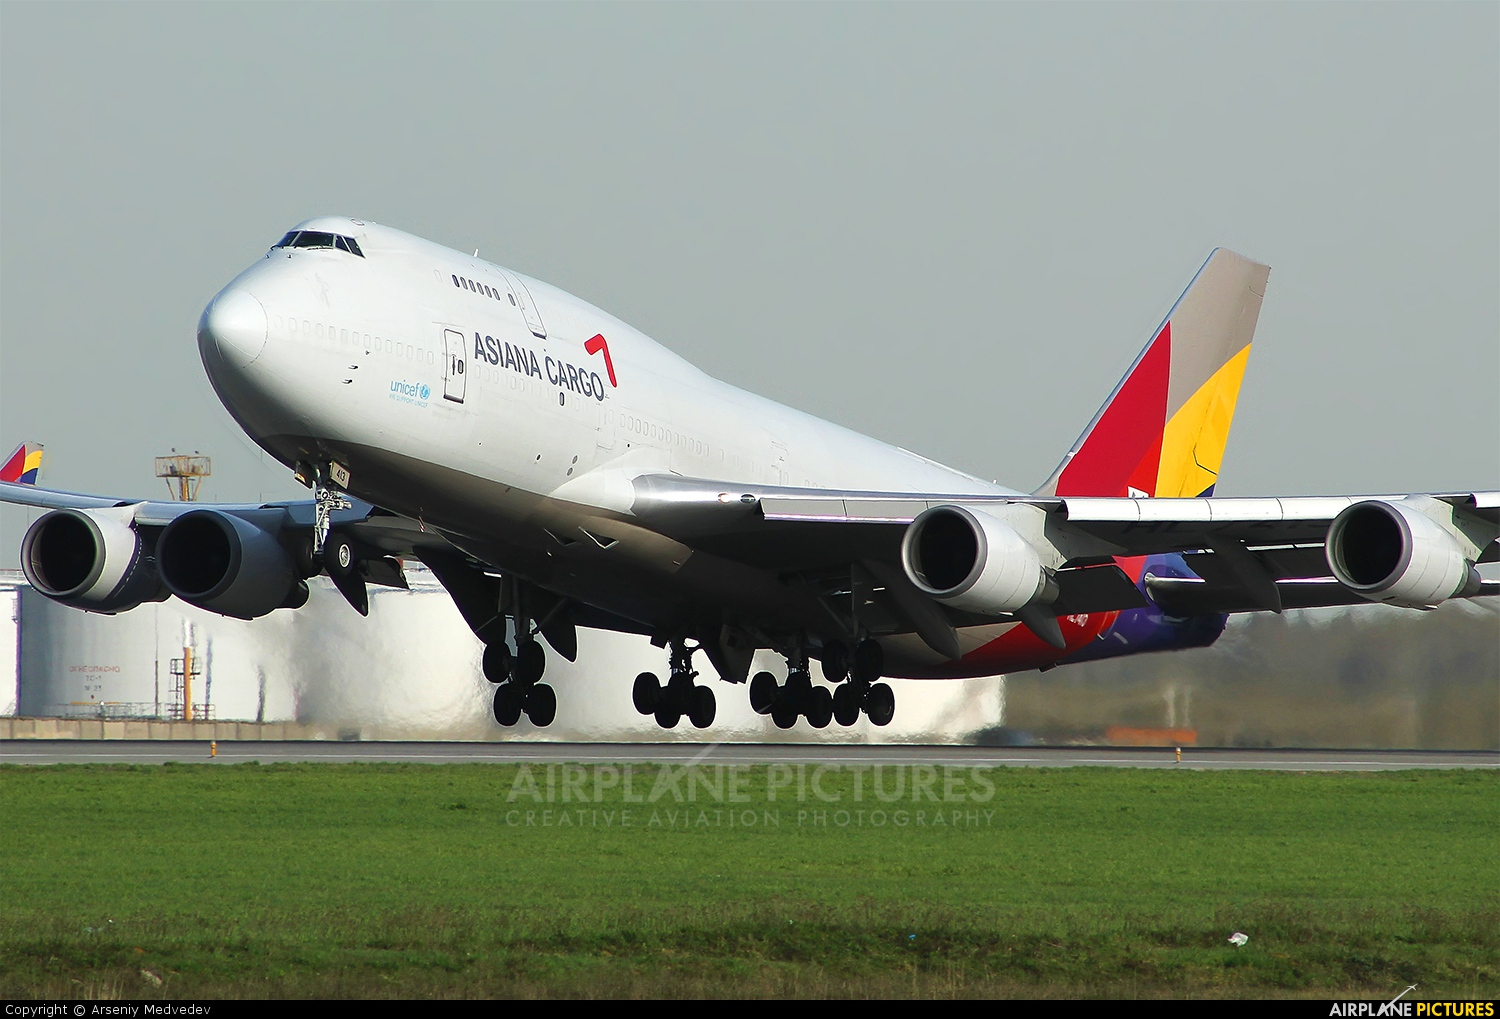 HL7413 - Asiana Cargo Boeing 747-400BCF, SF, BDSF at ...